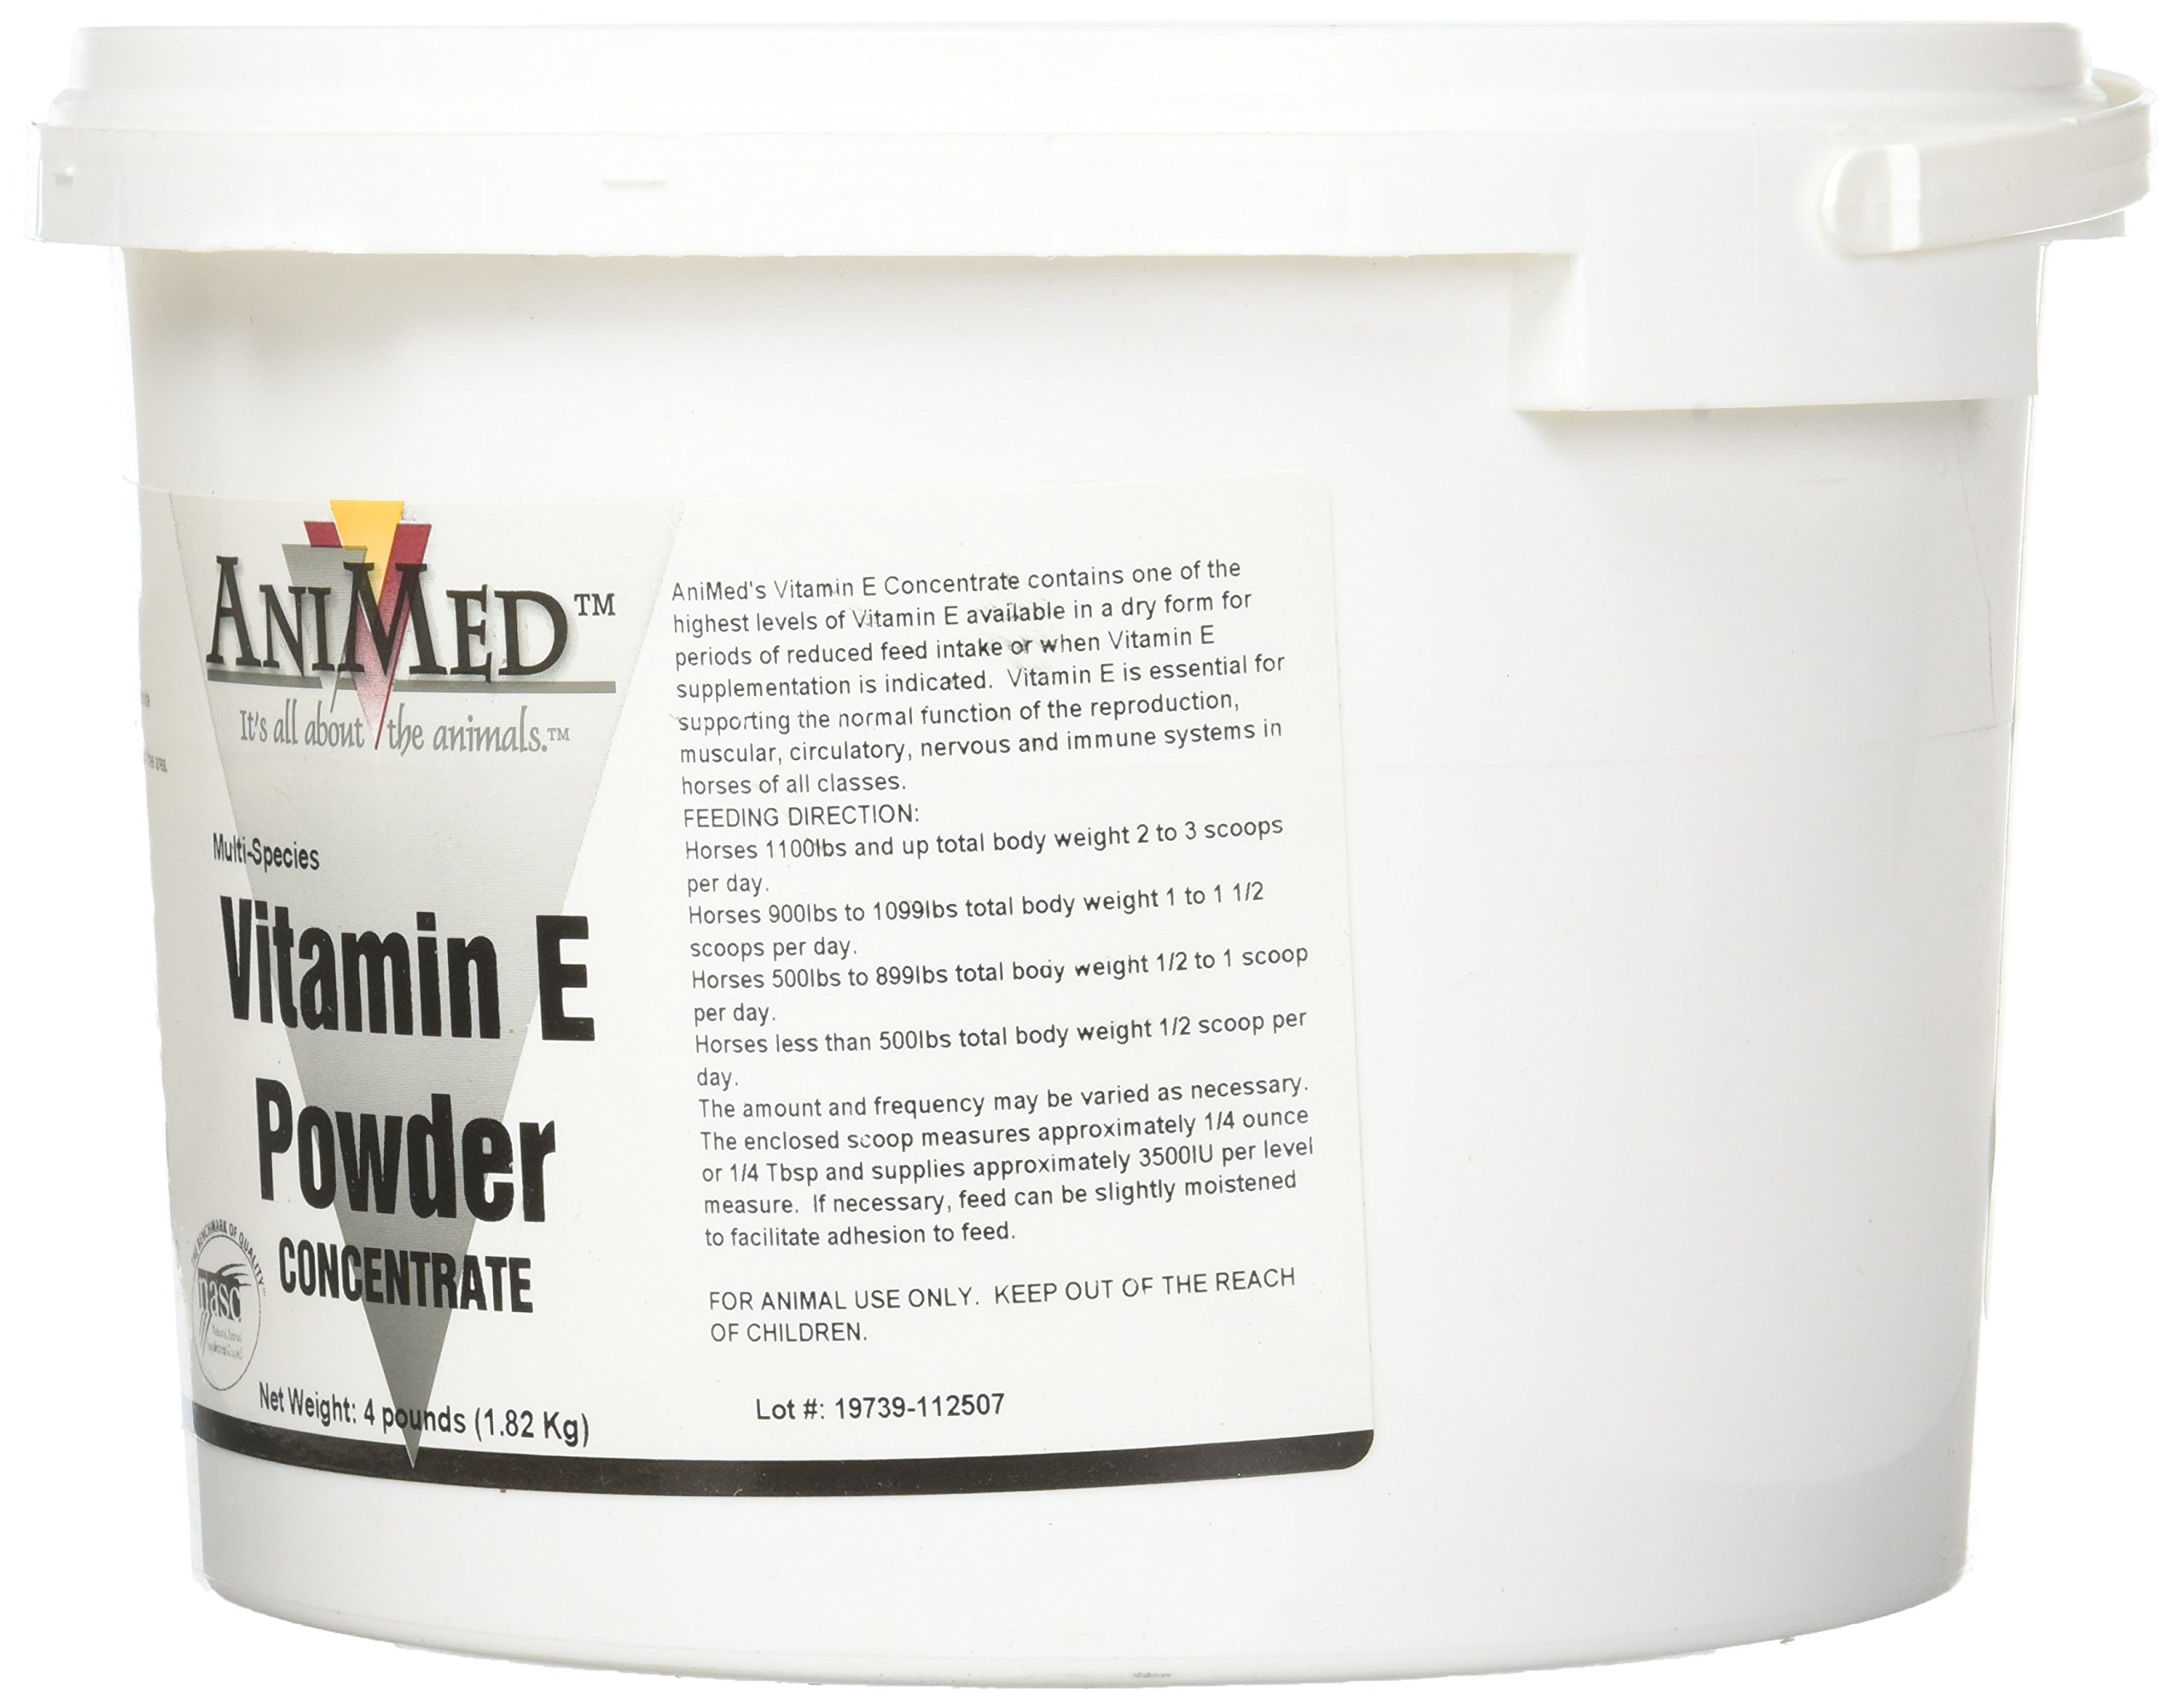 AniMed Vitamin E Concentrate Supplement for Horses, 4-Pound by AniMed (Image #4)